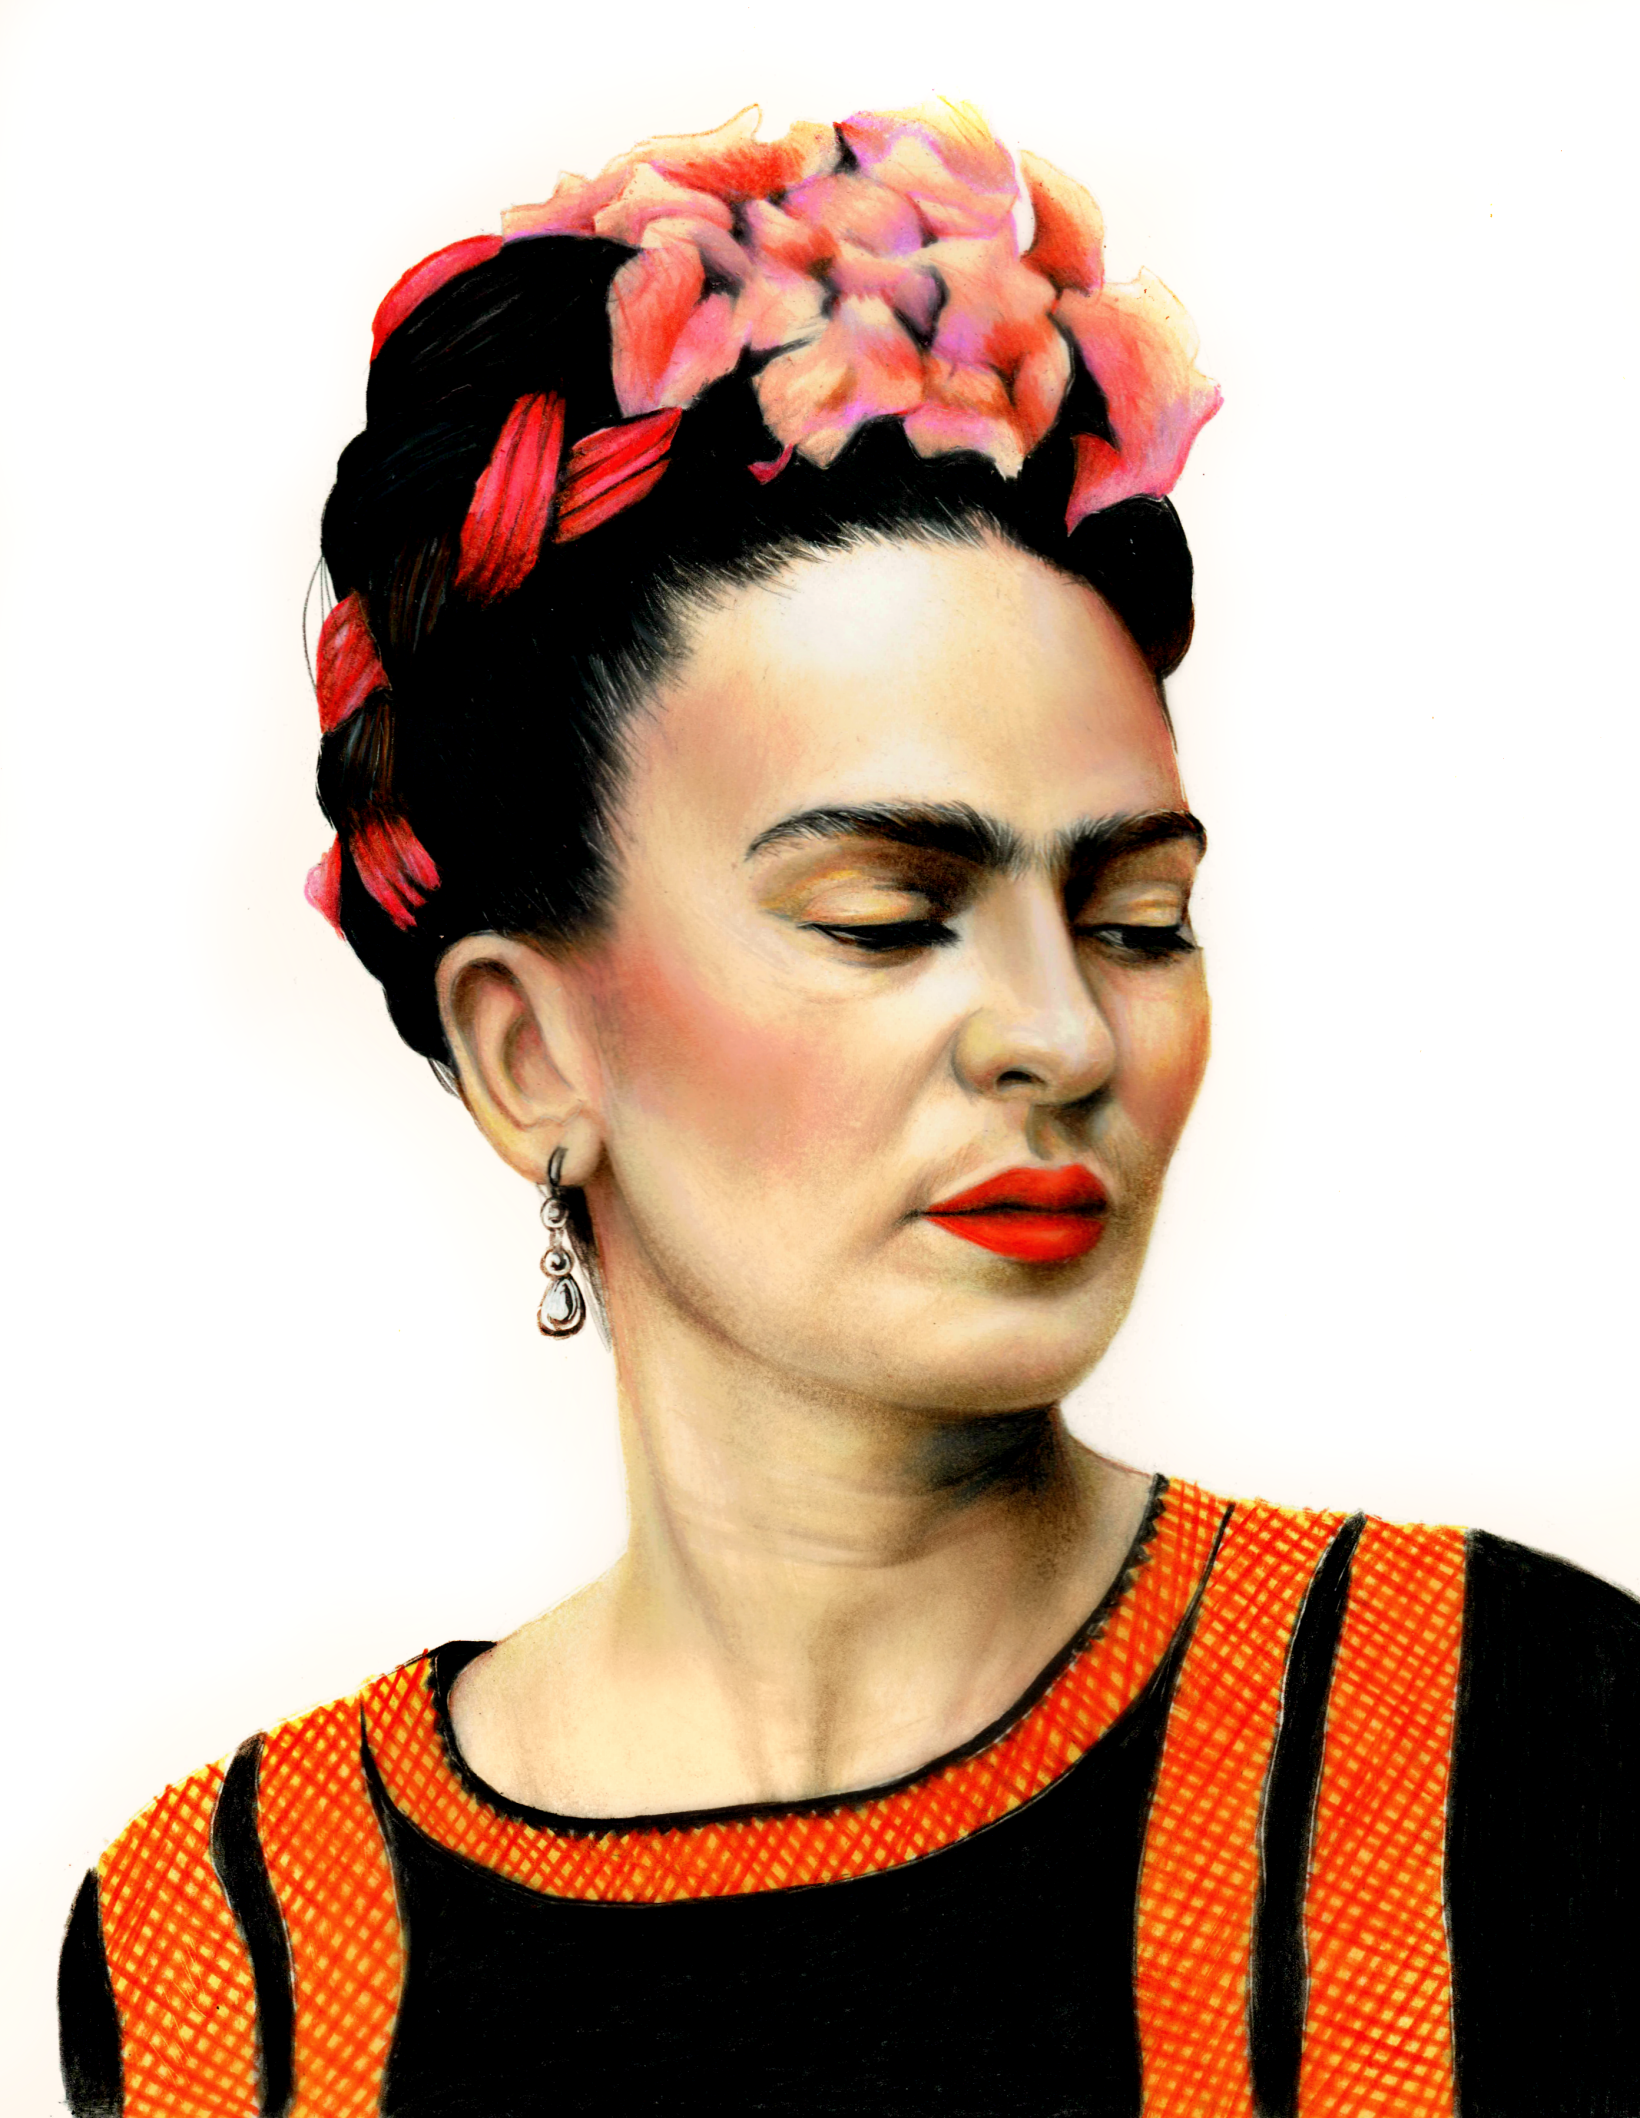 Friday Kahlo Art by Ling McGregor